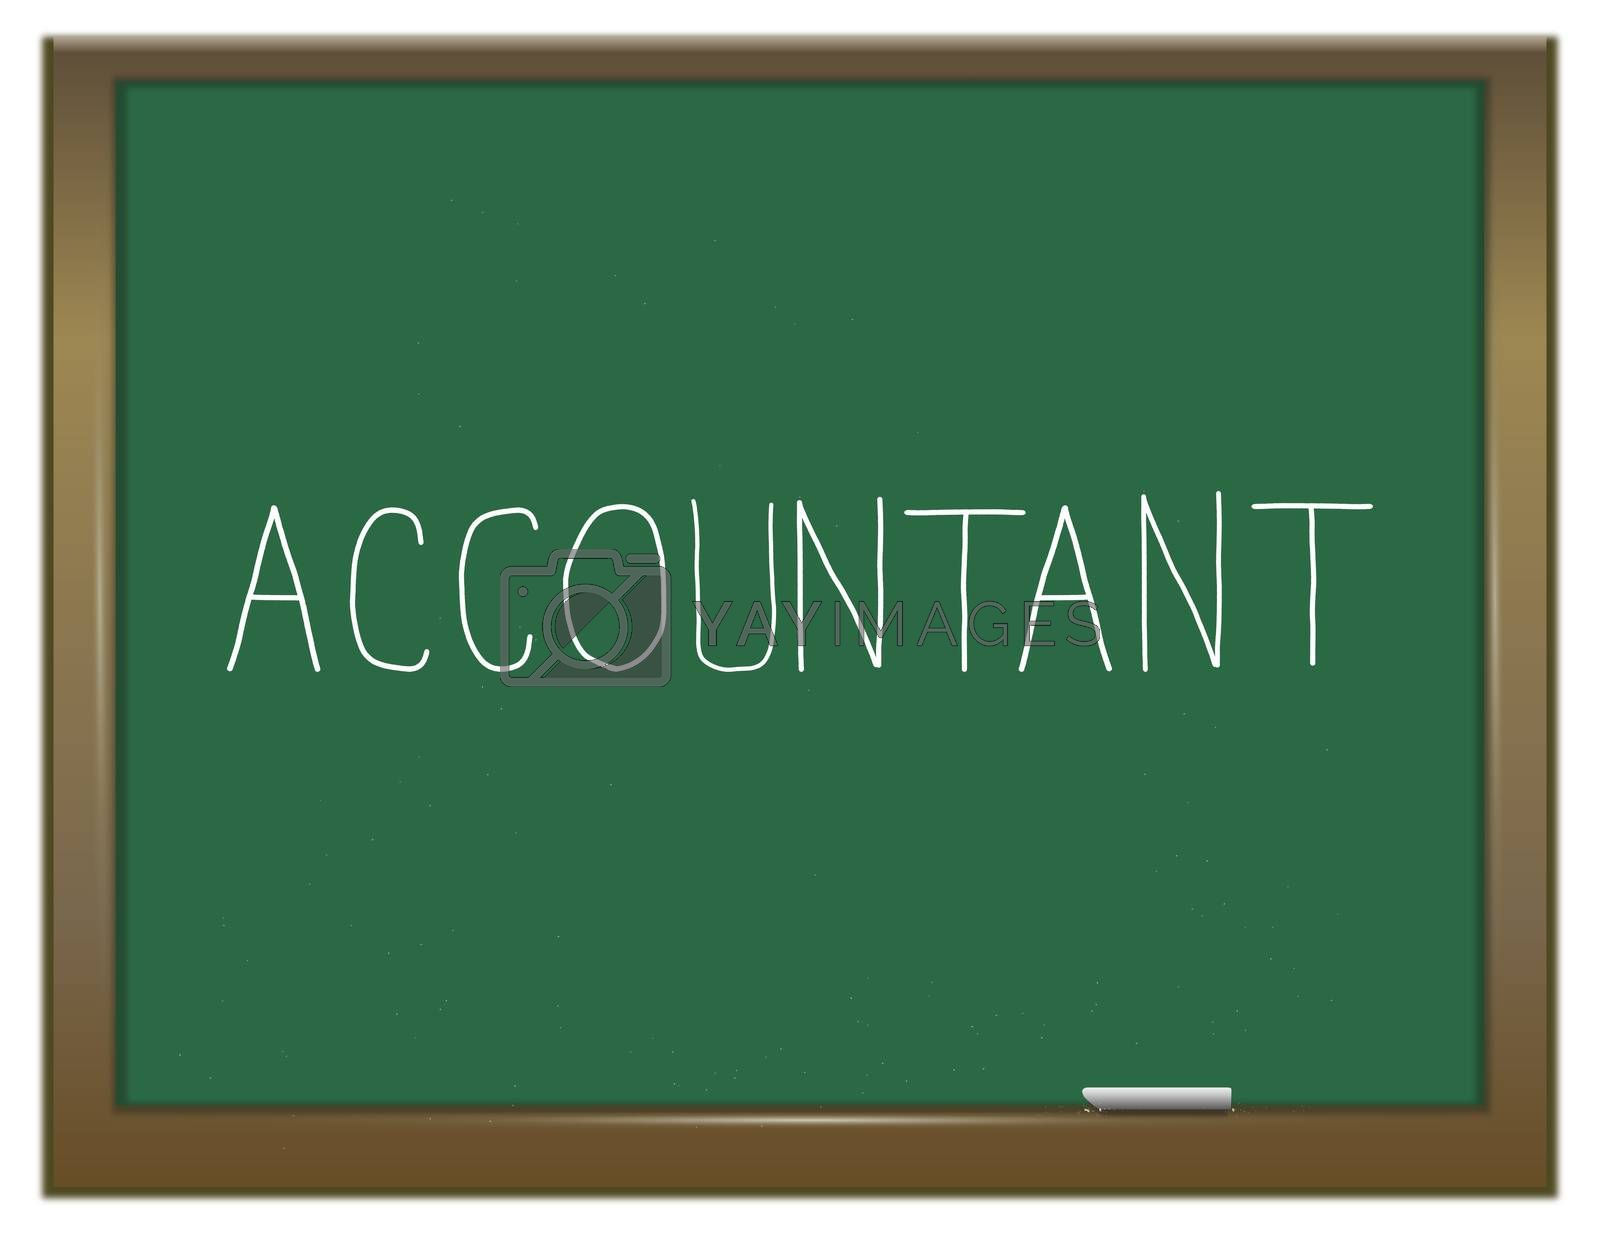 Illustration depicting a green chalkboard with an accountant concept.